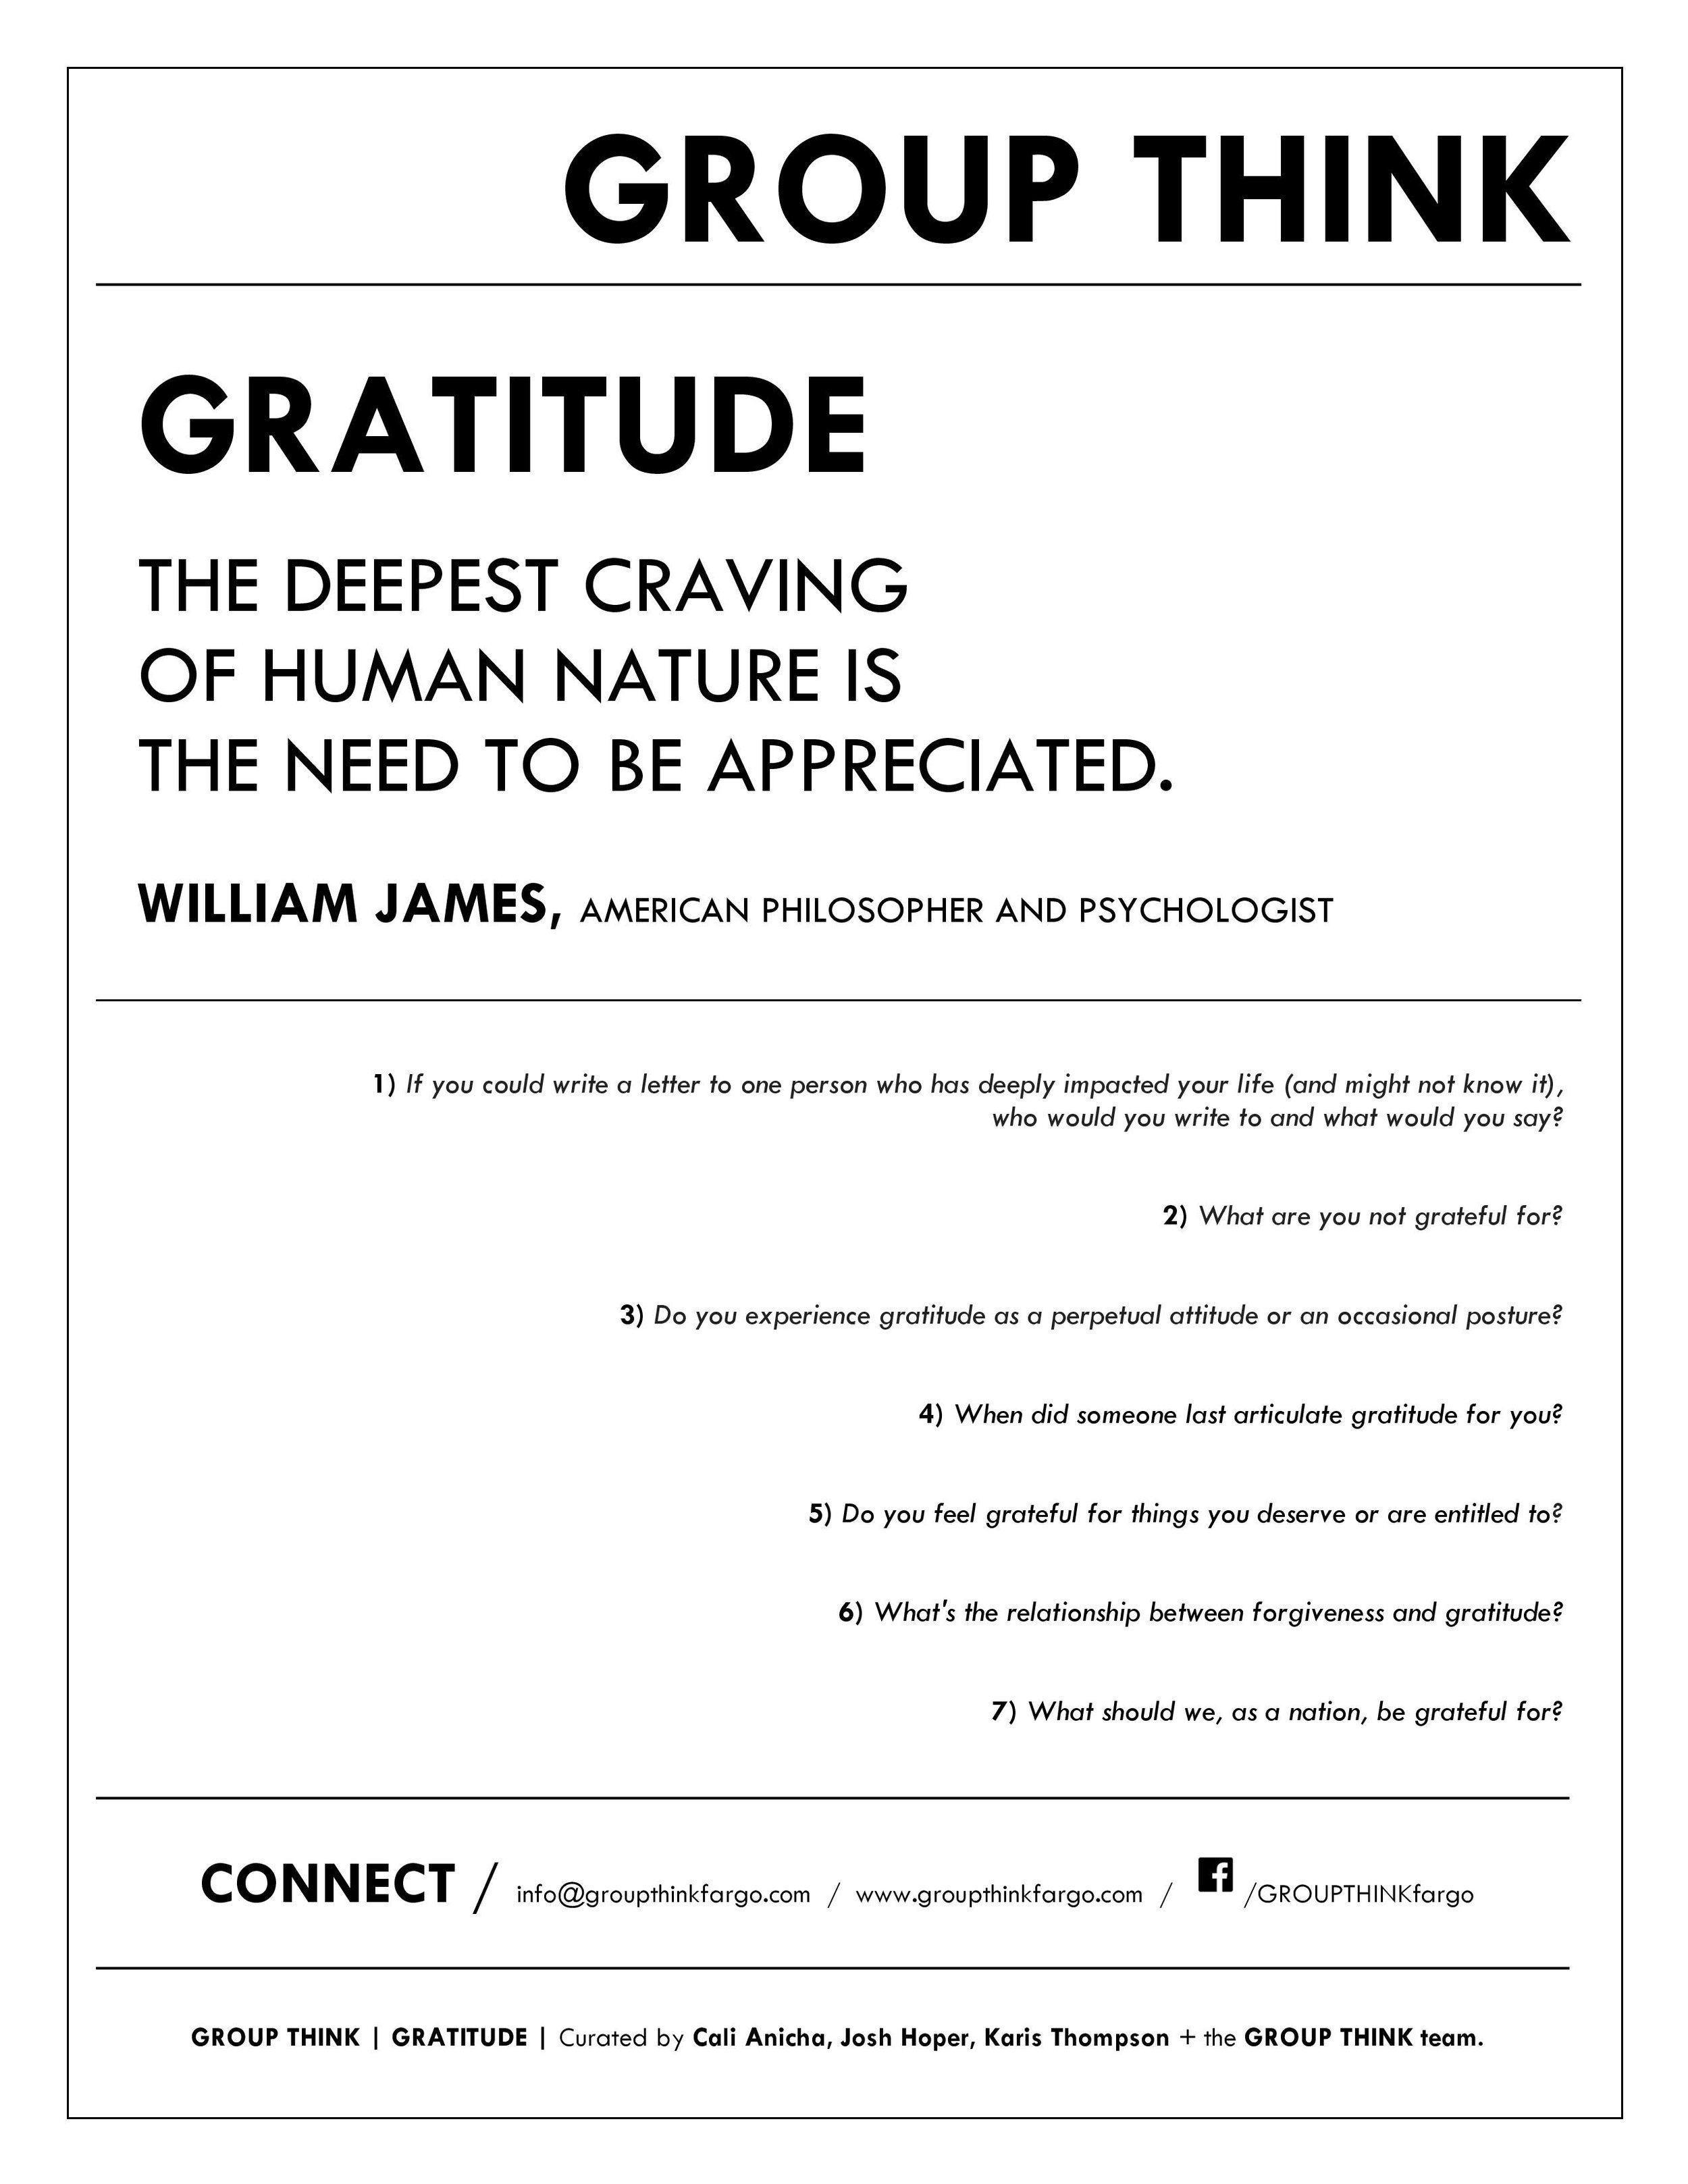 GROUP THINK - 08.2019 - GRATITUDE handout-1.jpg